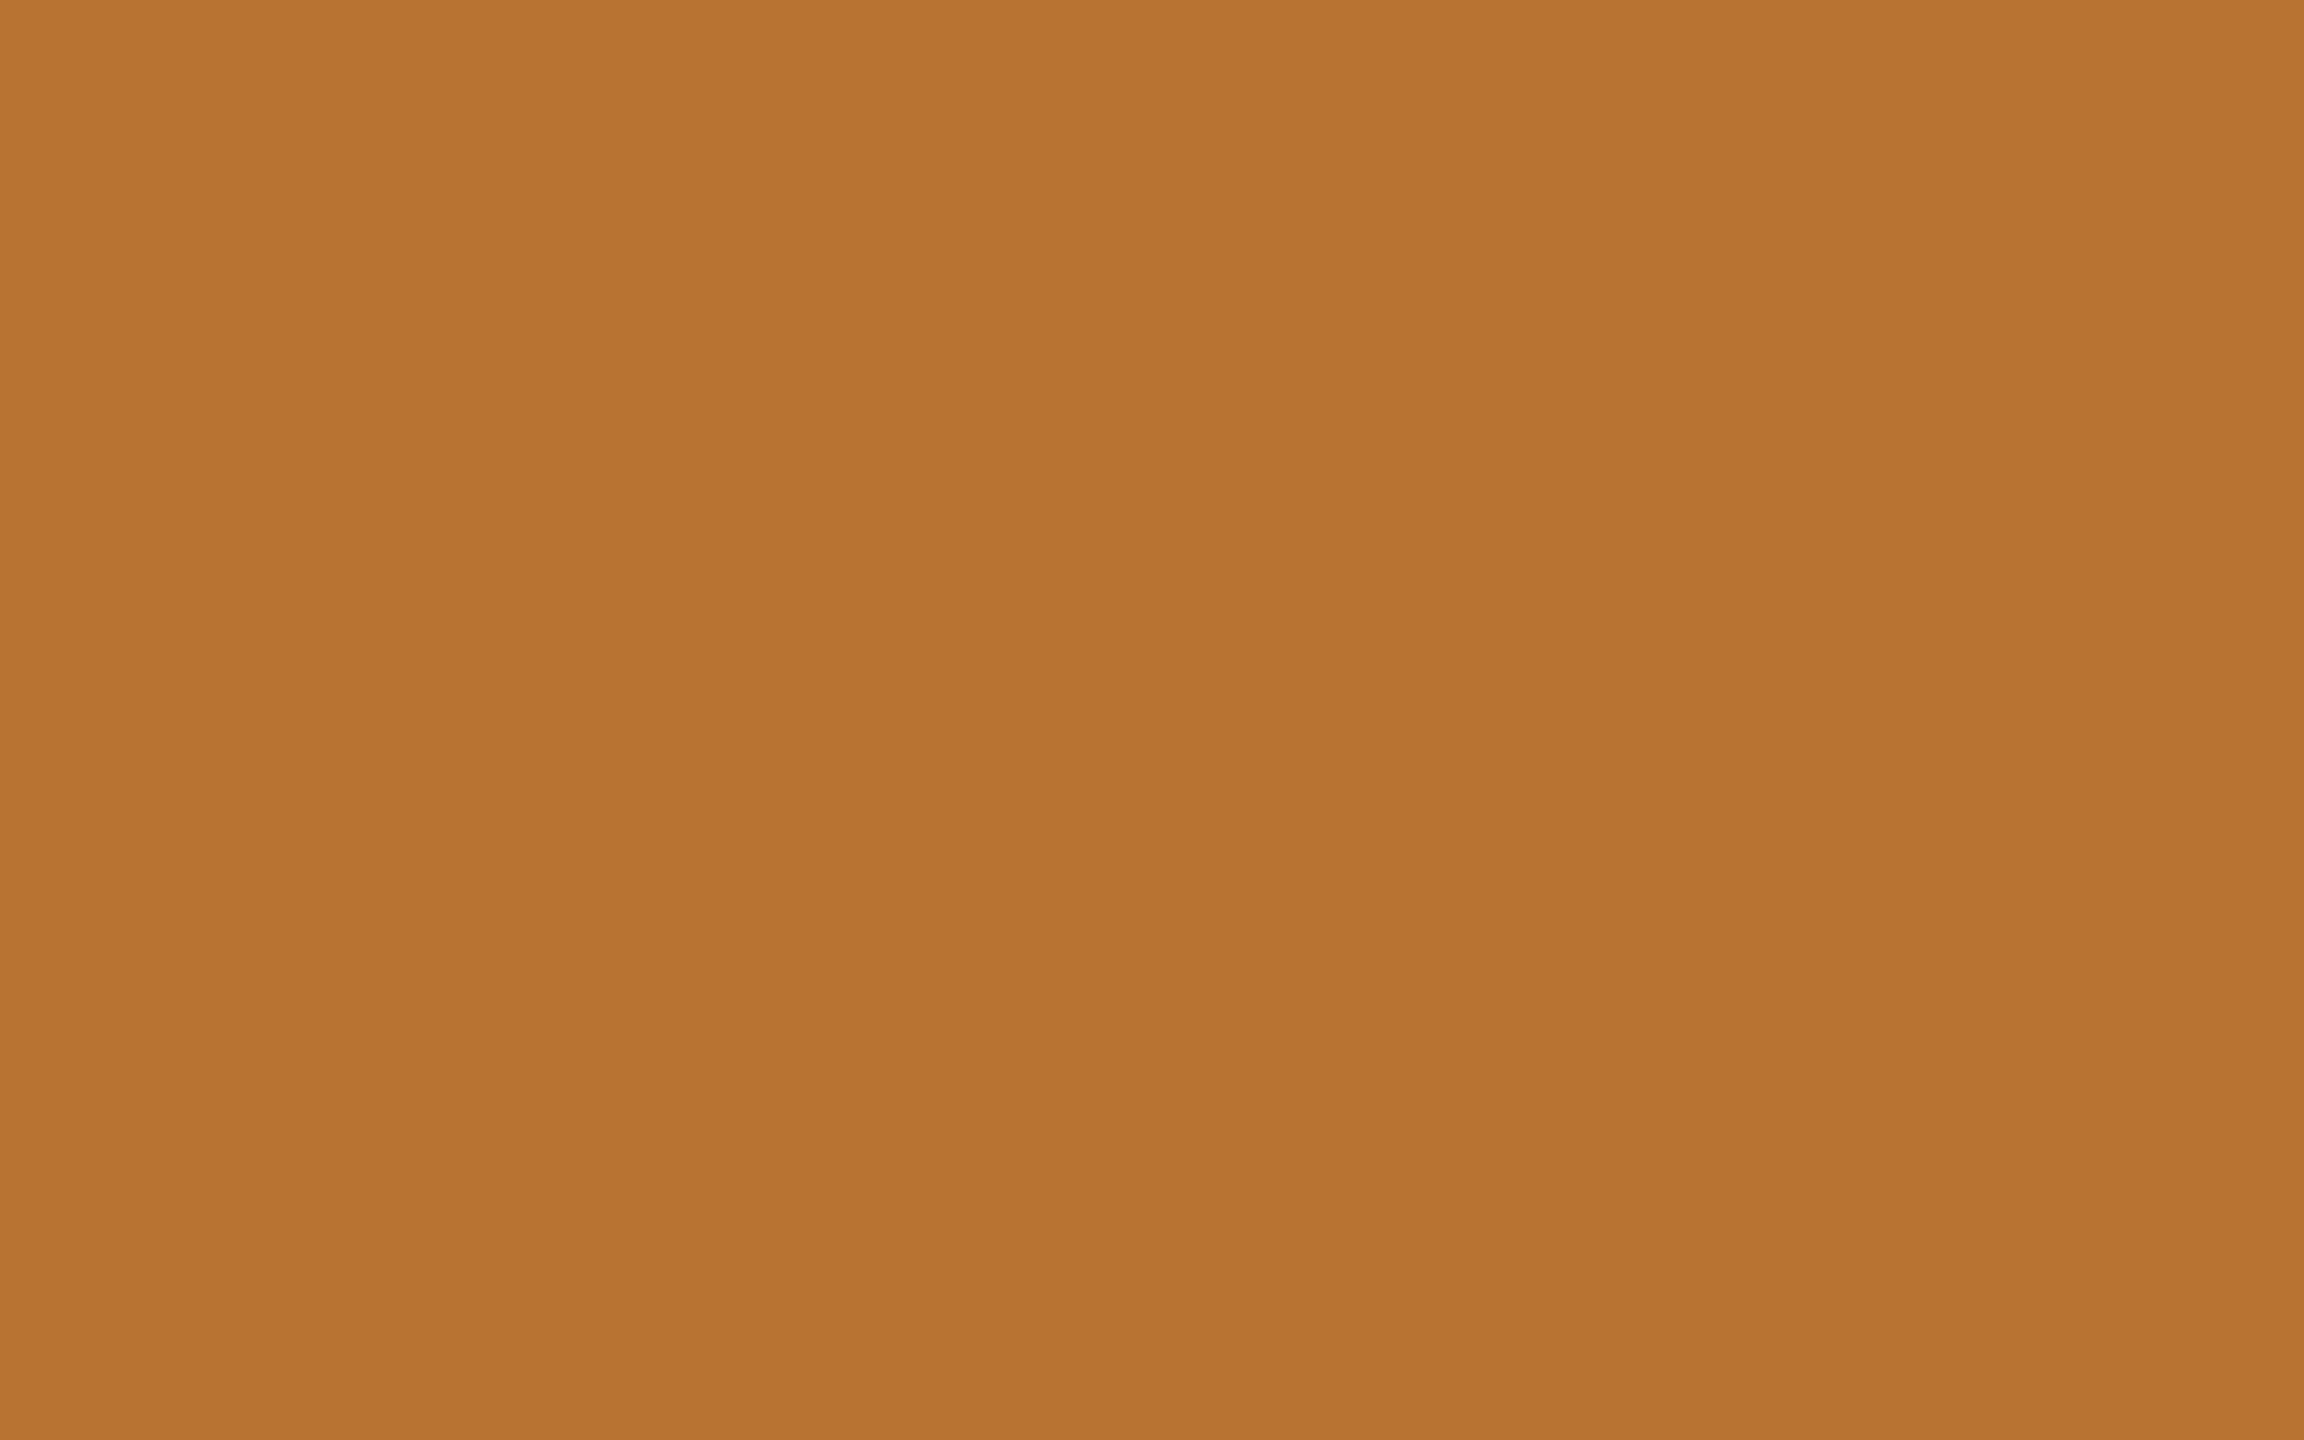 2304x1440 Copper Solid Color Background